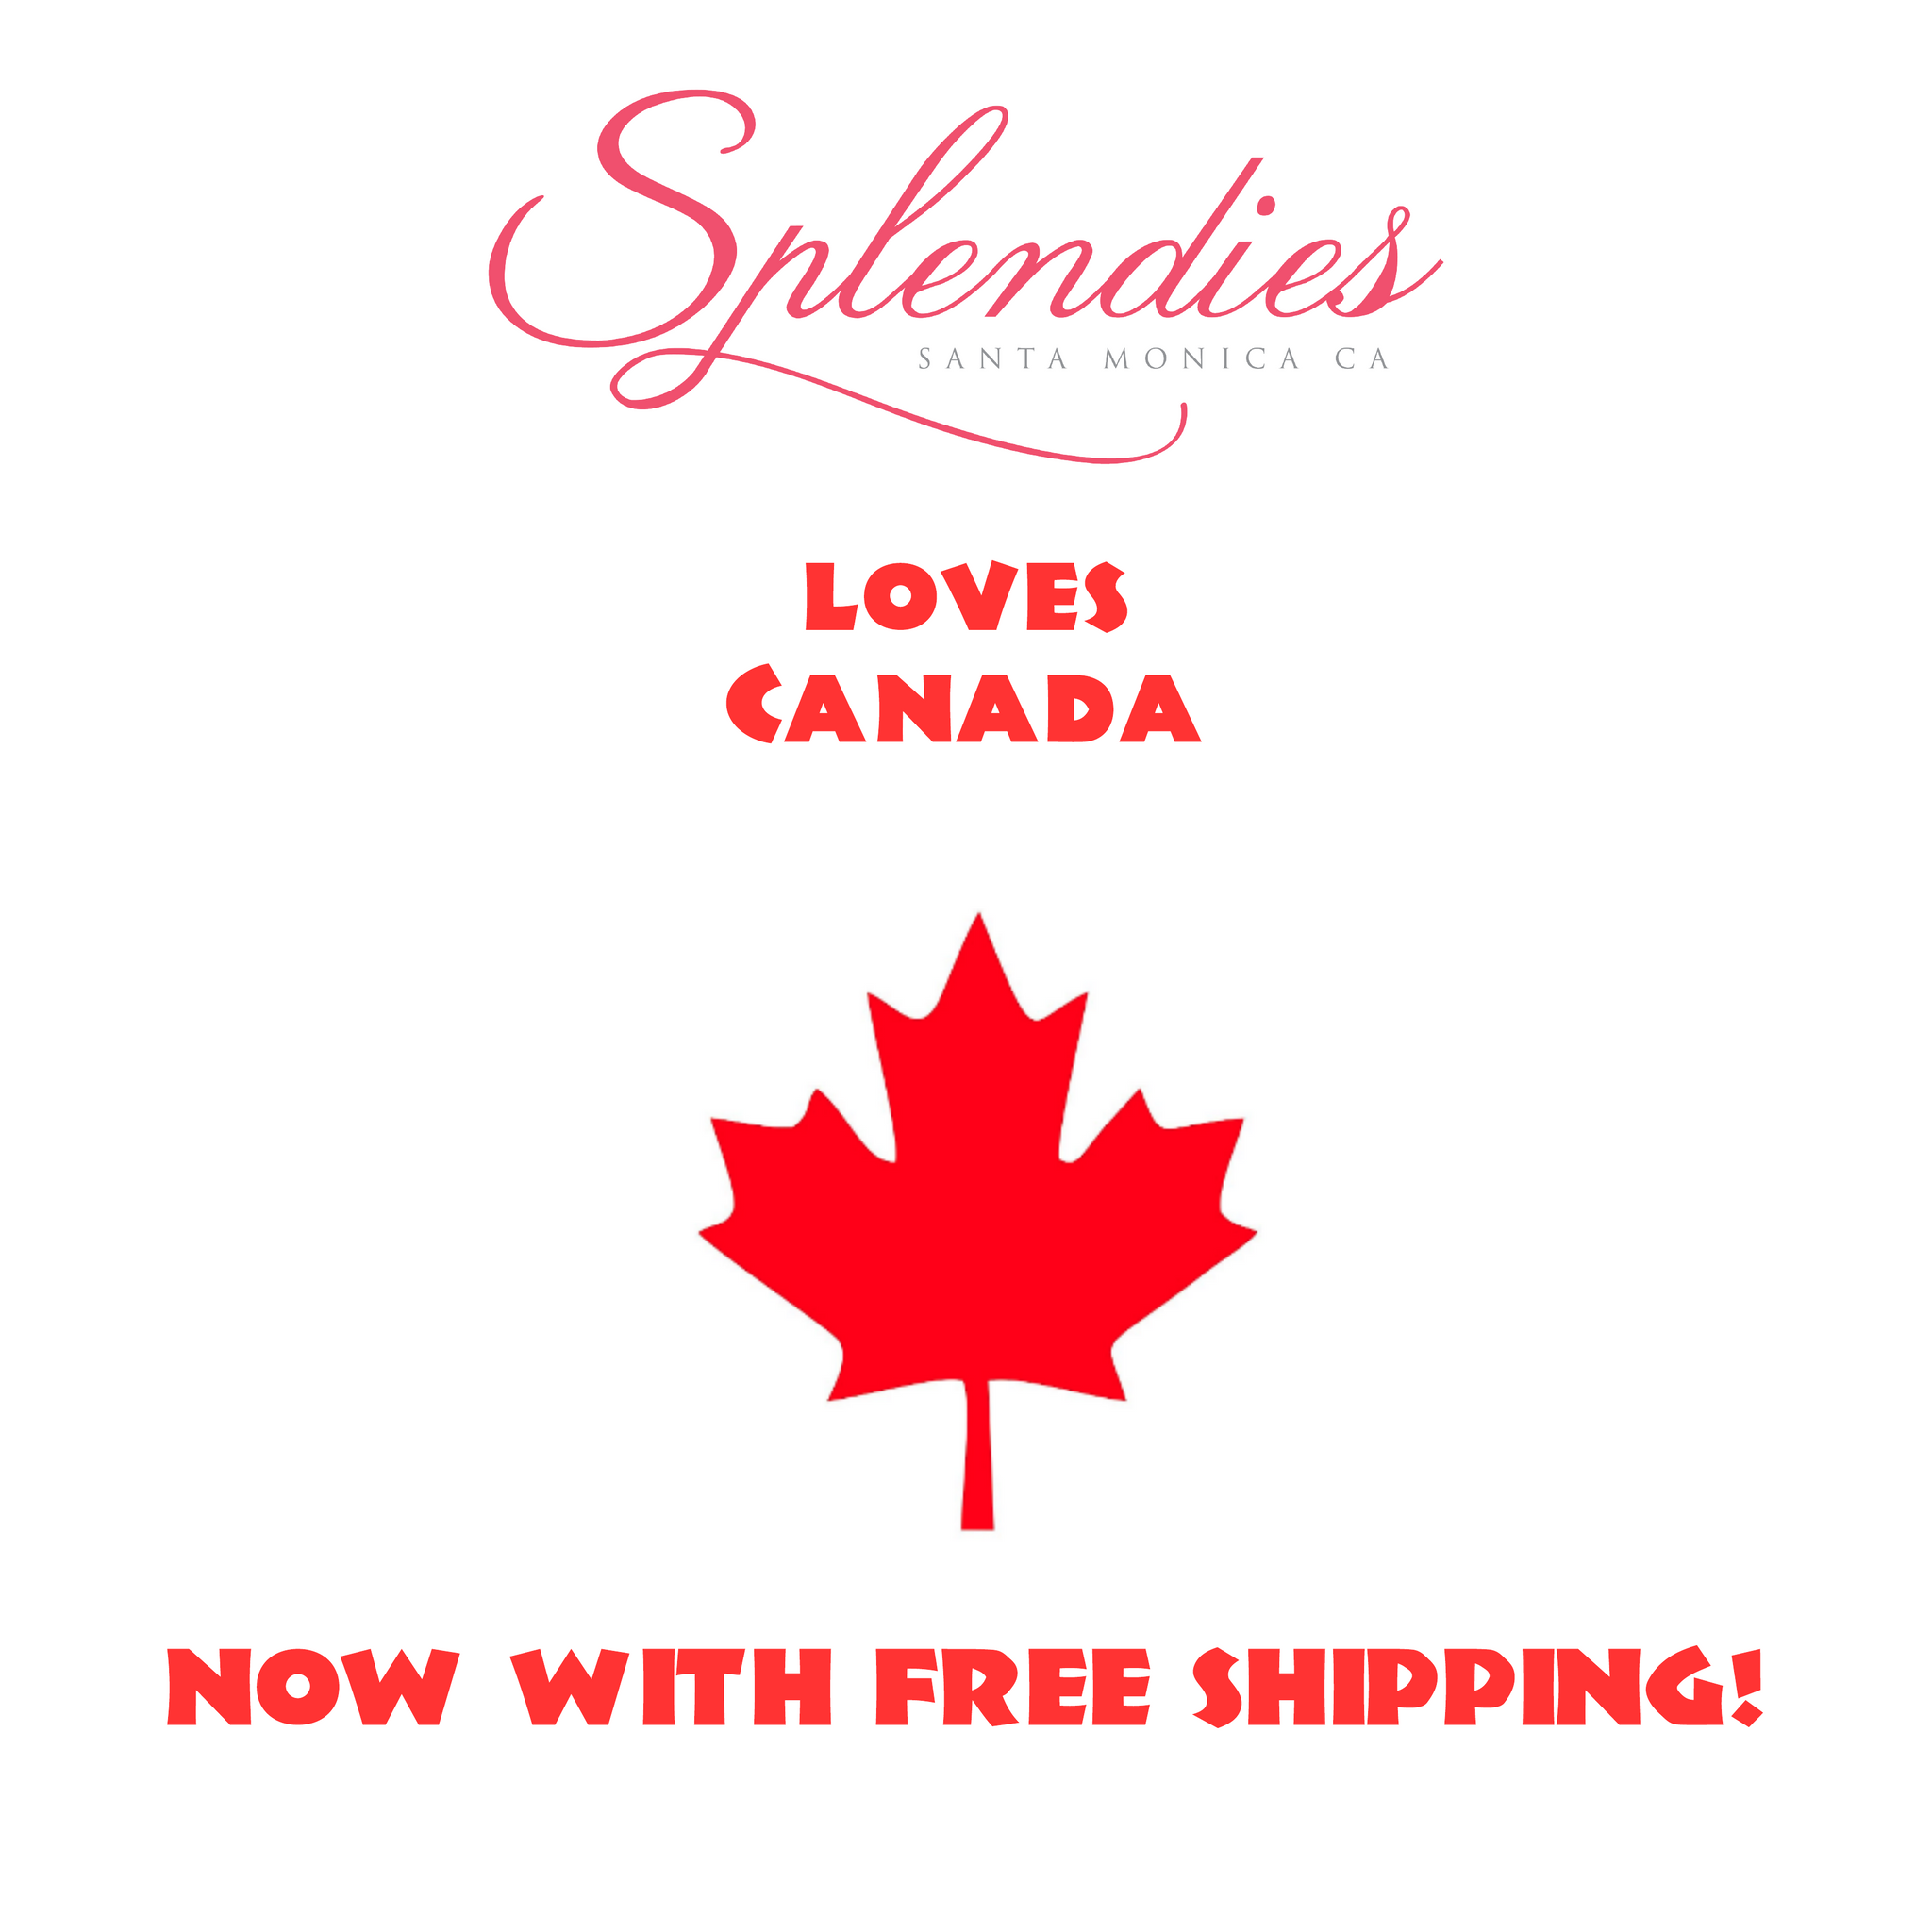 Splendies Announces FREE SHIPPING to Canada!